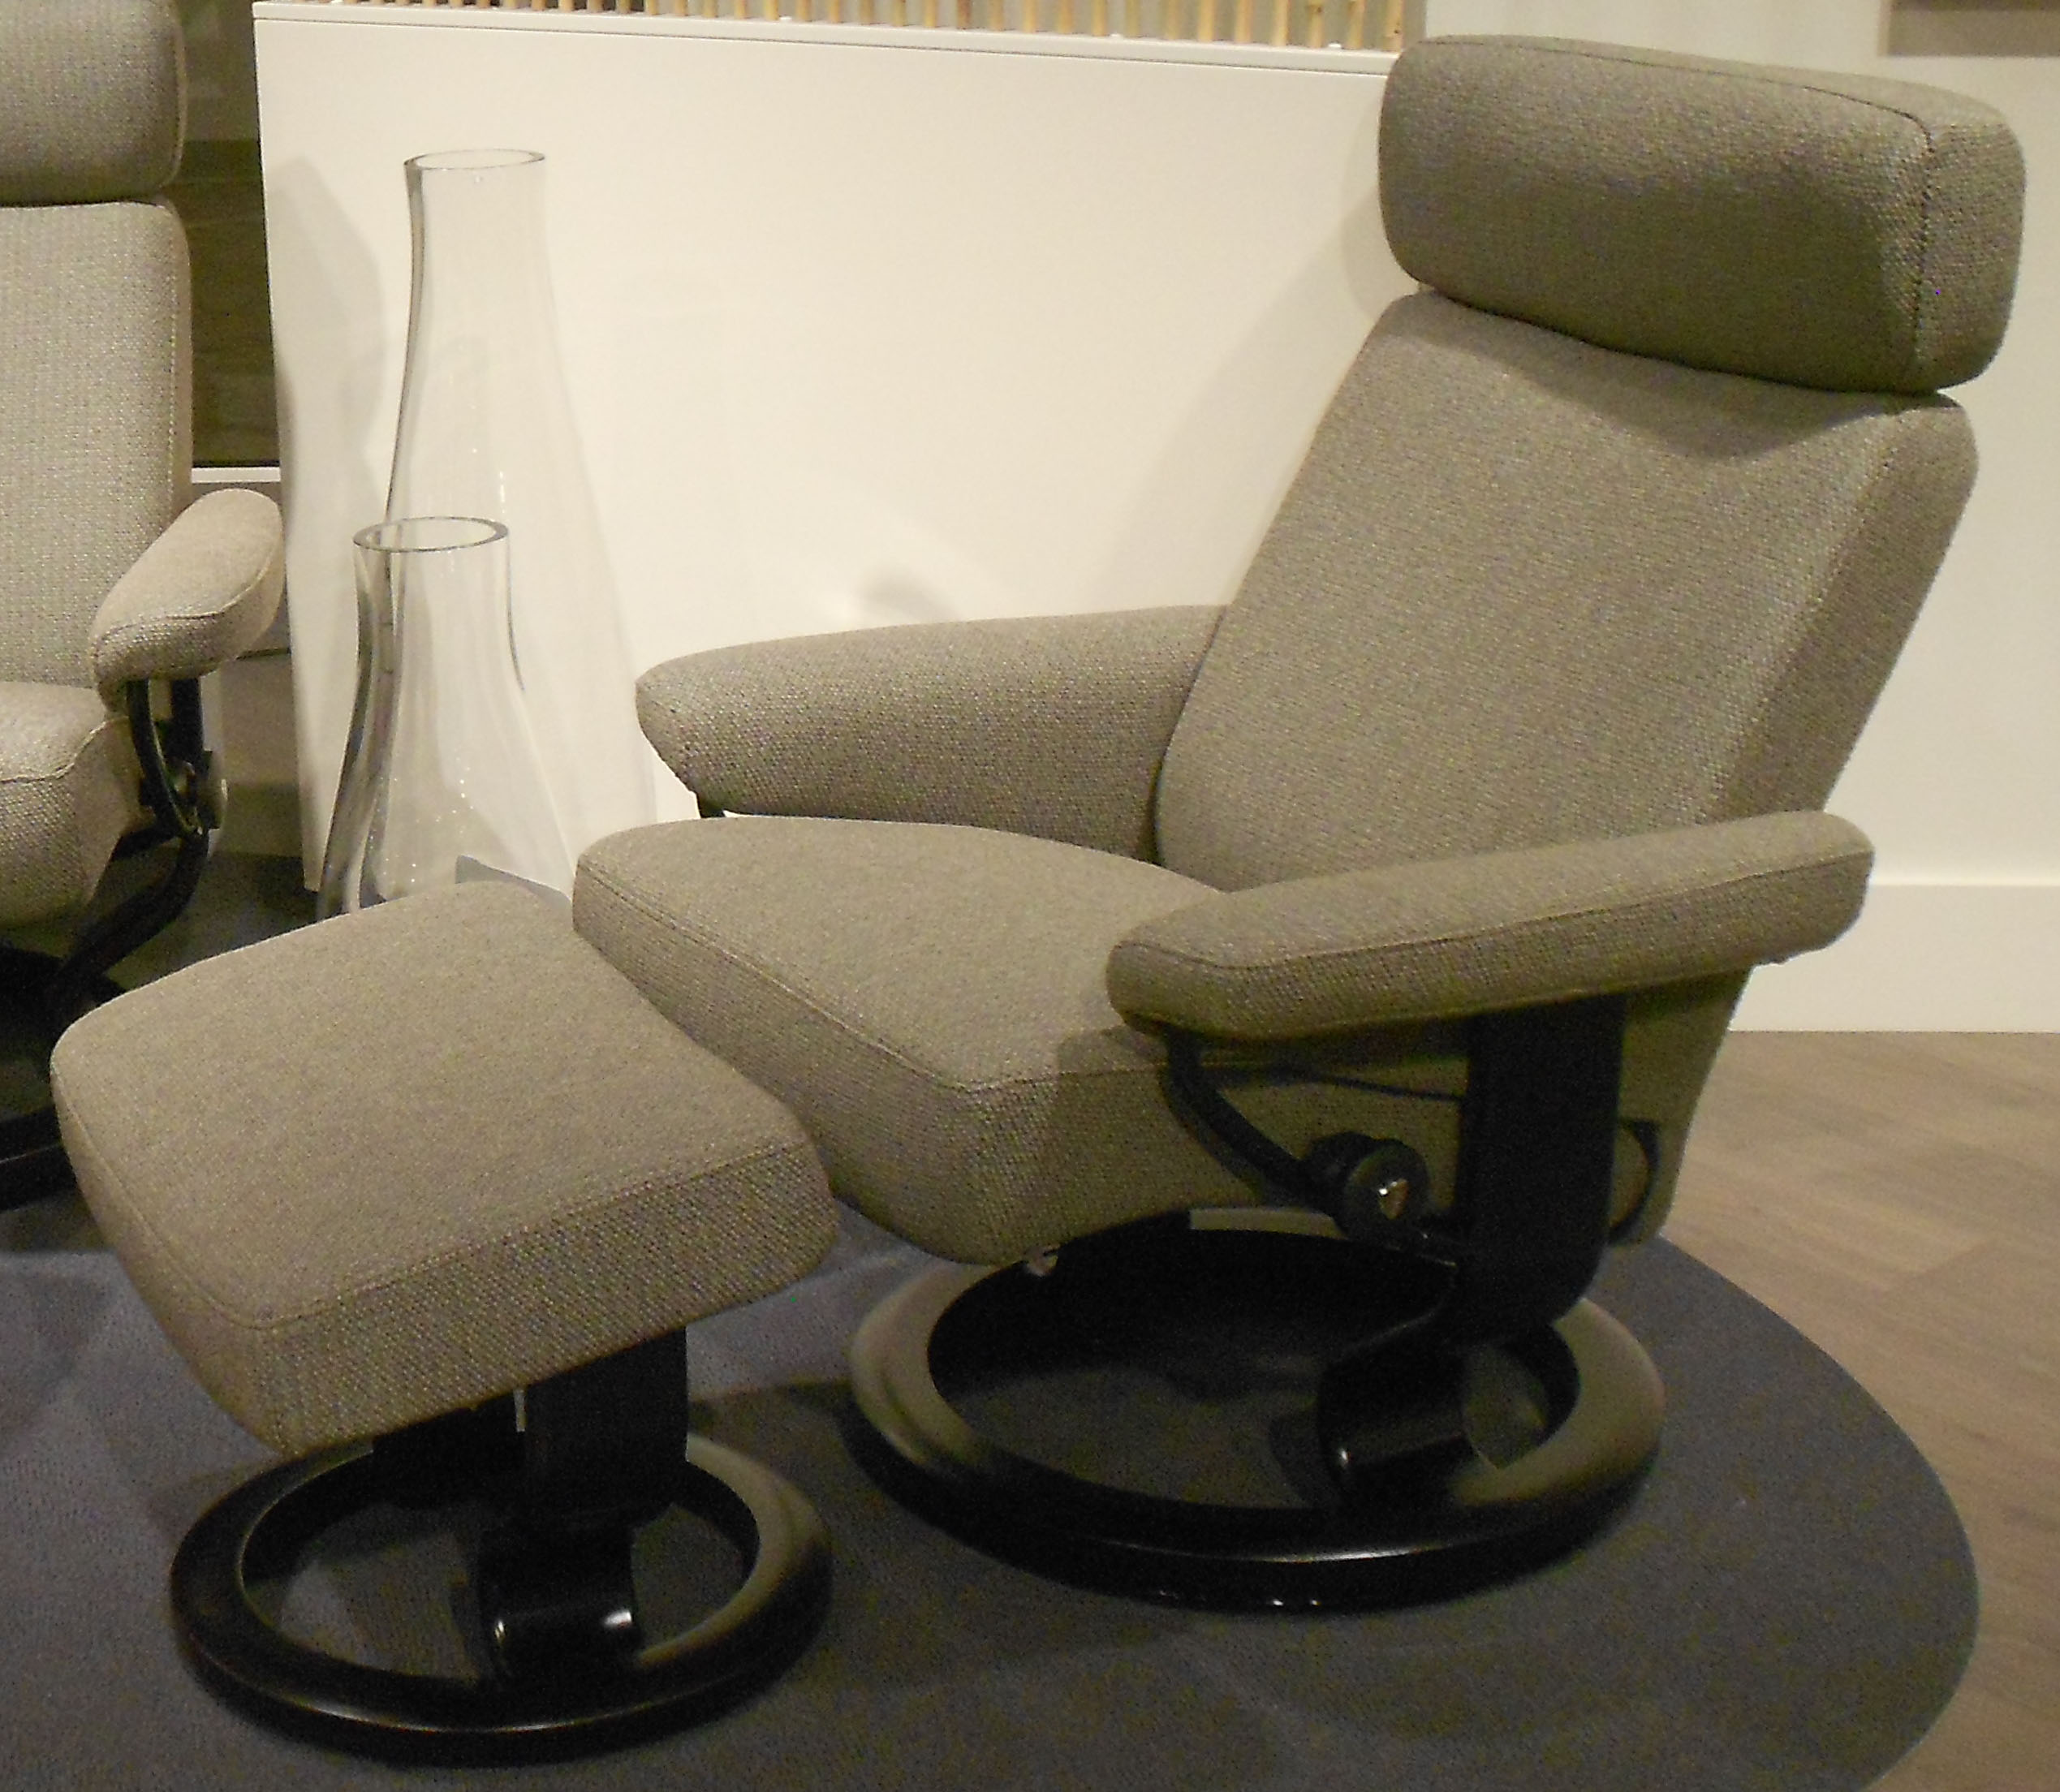 Stressless Sofa And Chairs Ekornes Stressless Orion Taurus Recliner Chair Lounger